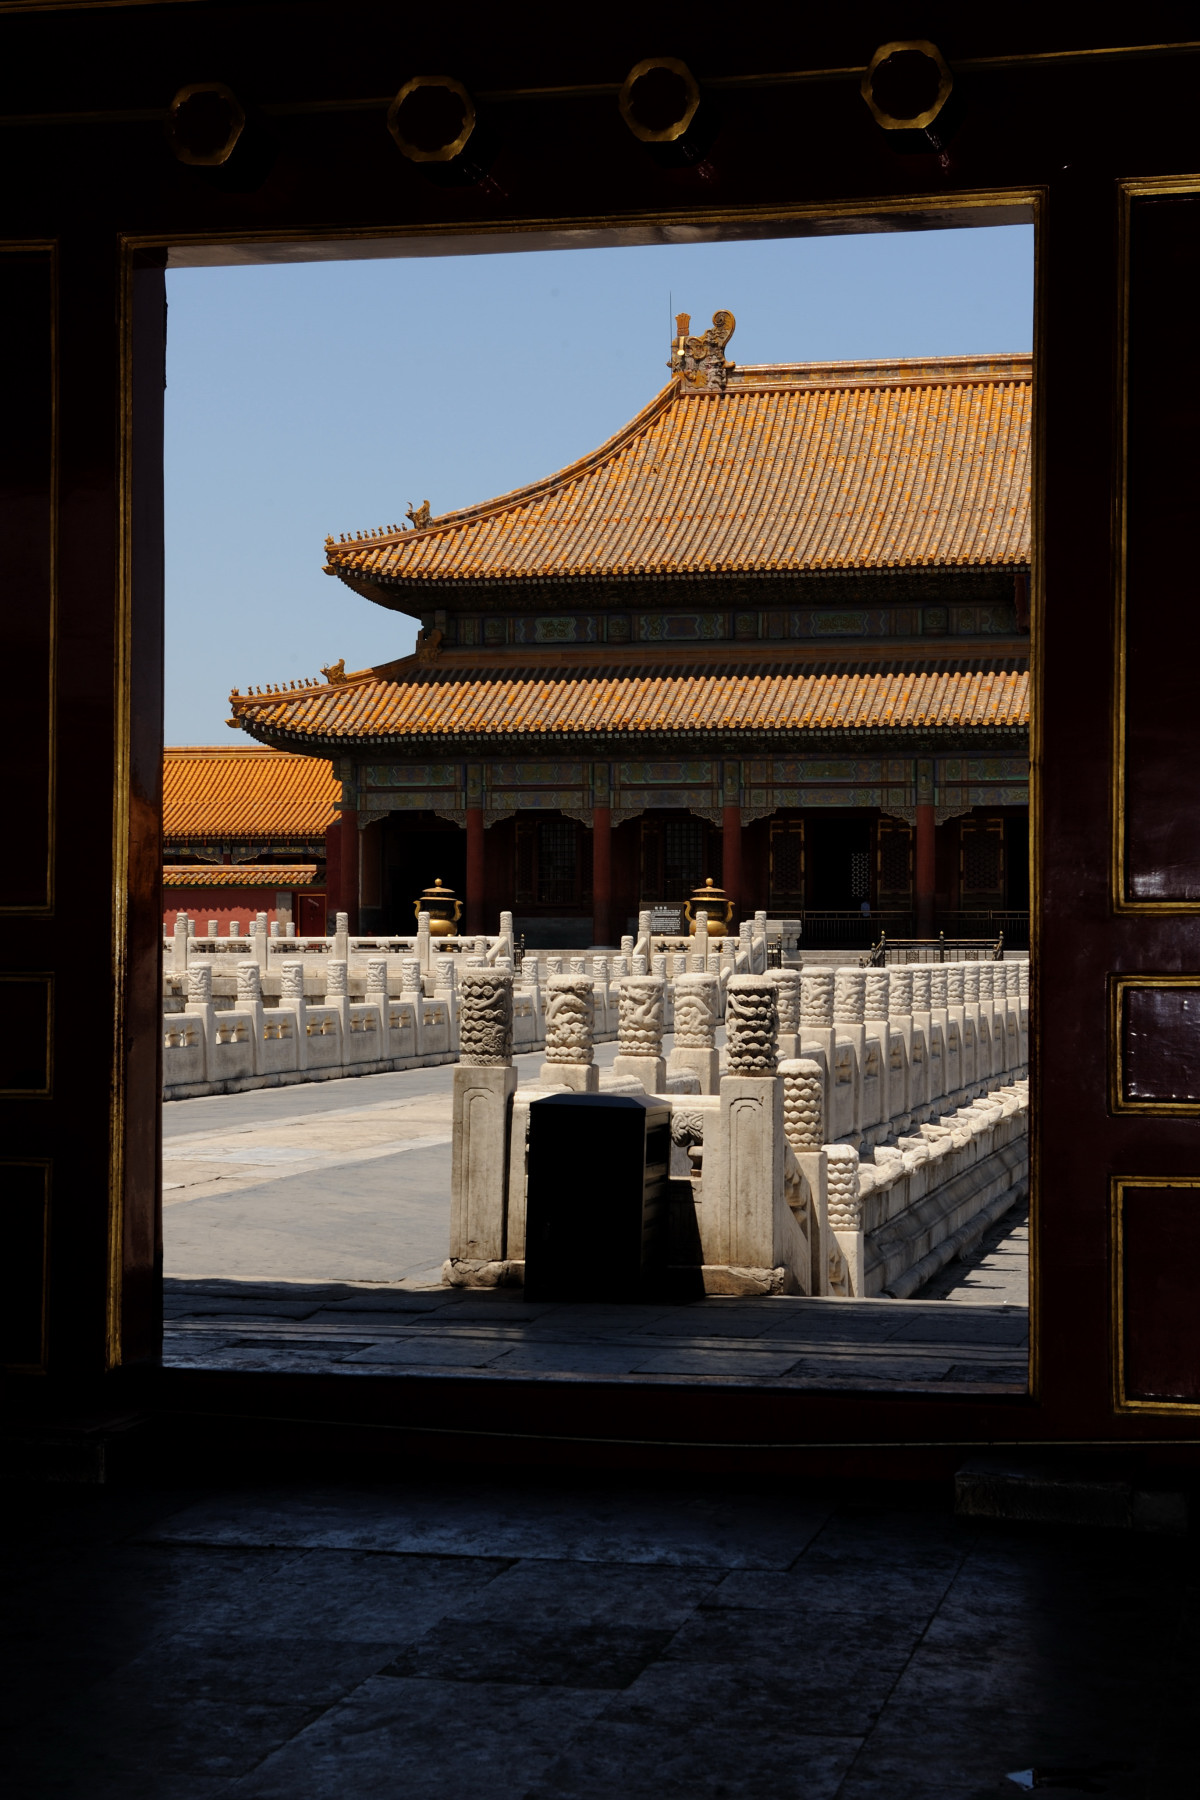 All had the chance to see the Chinese imperial palace from the Ming Dynasty to the end of the Qing Dynasty.